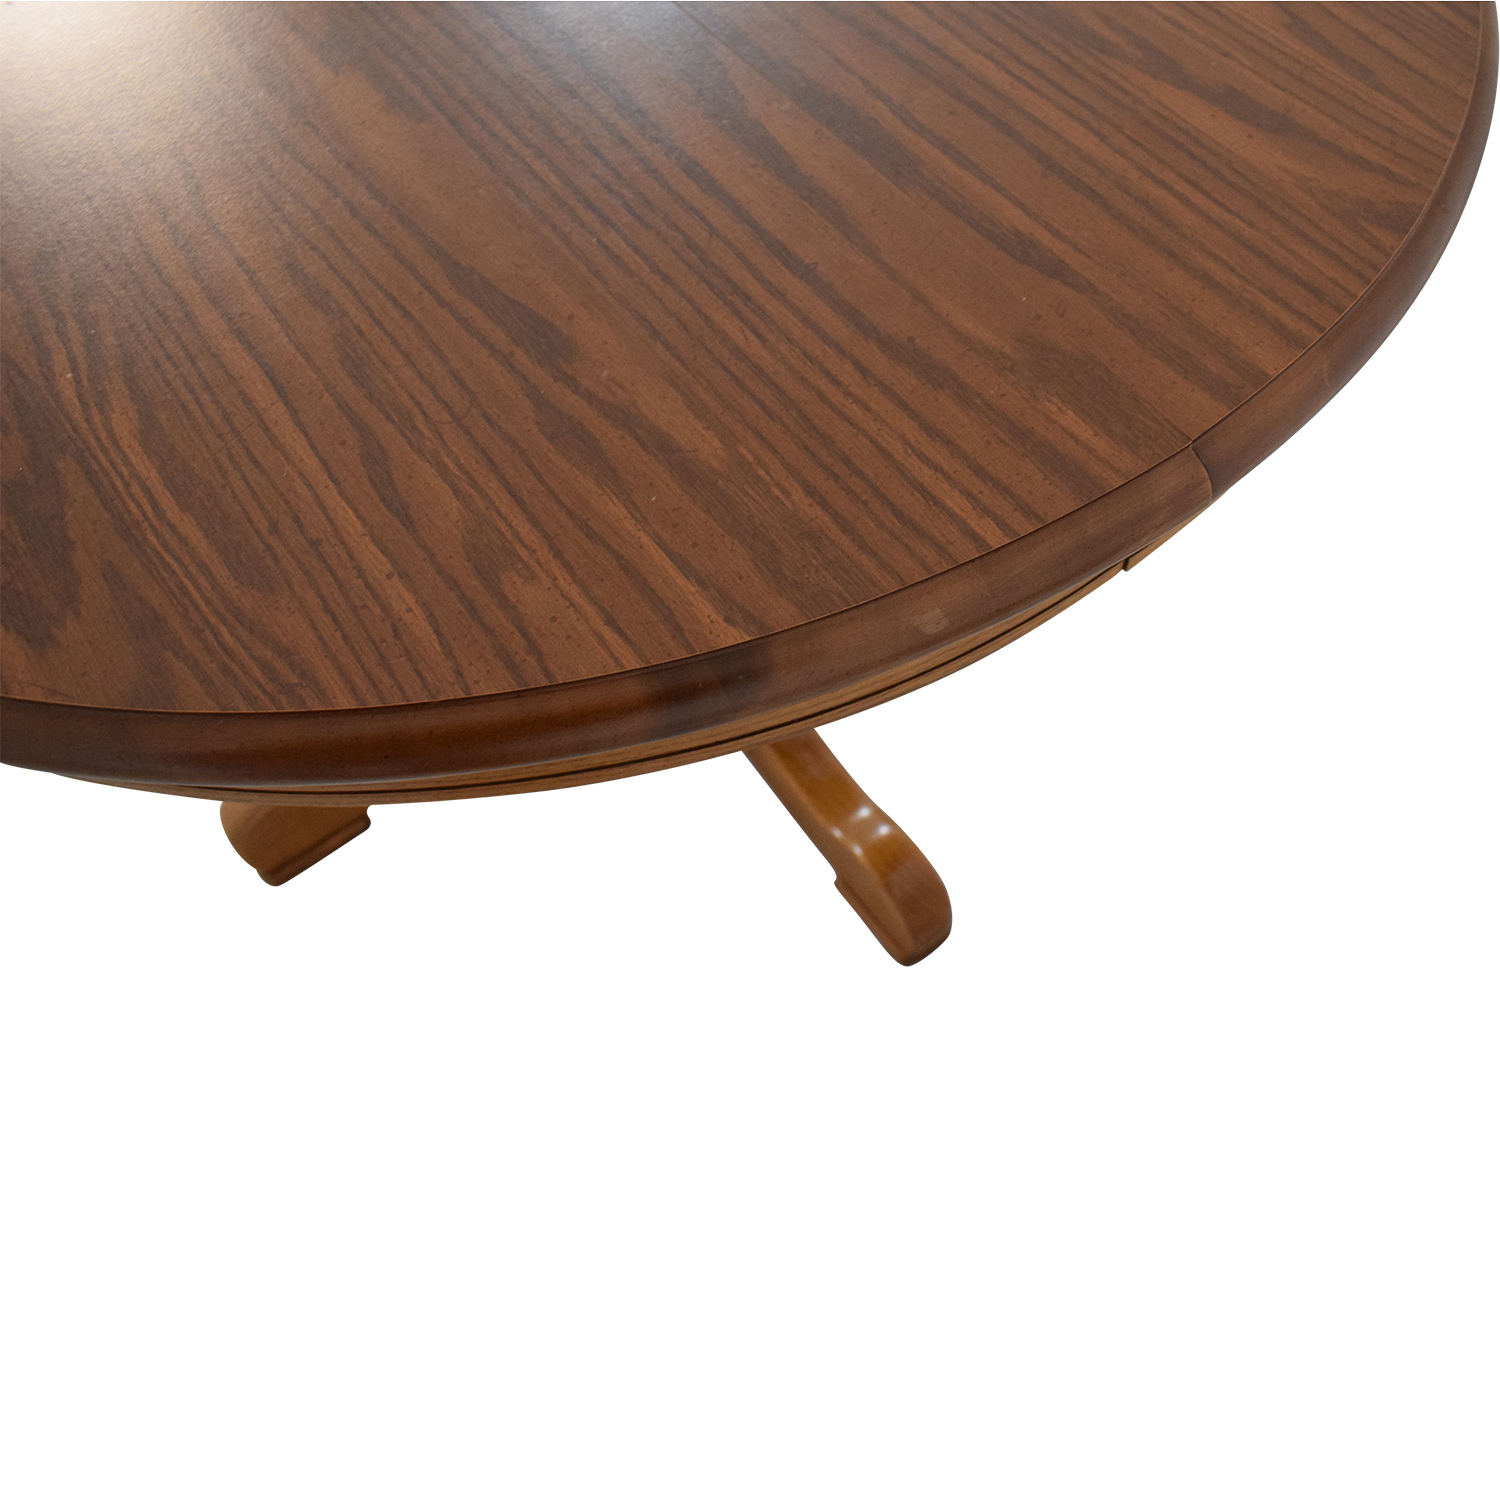 Tell City Tell City Dining Room Oak Pedestal Table ct